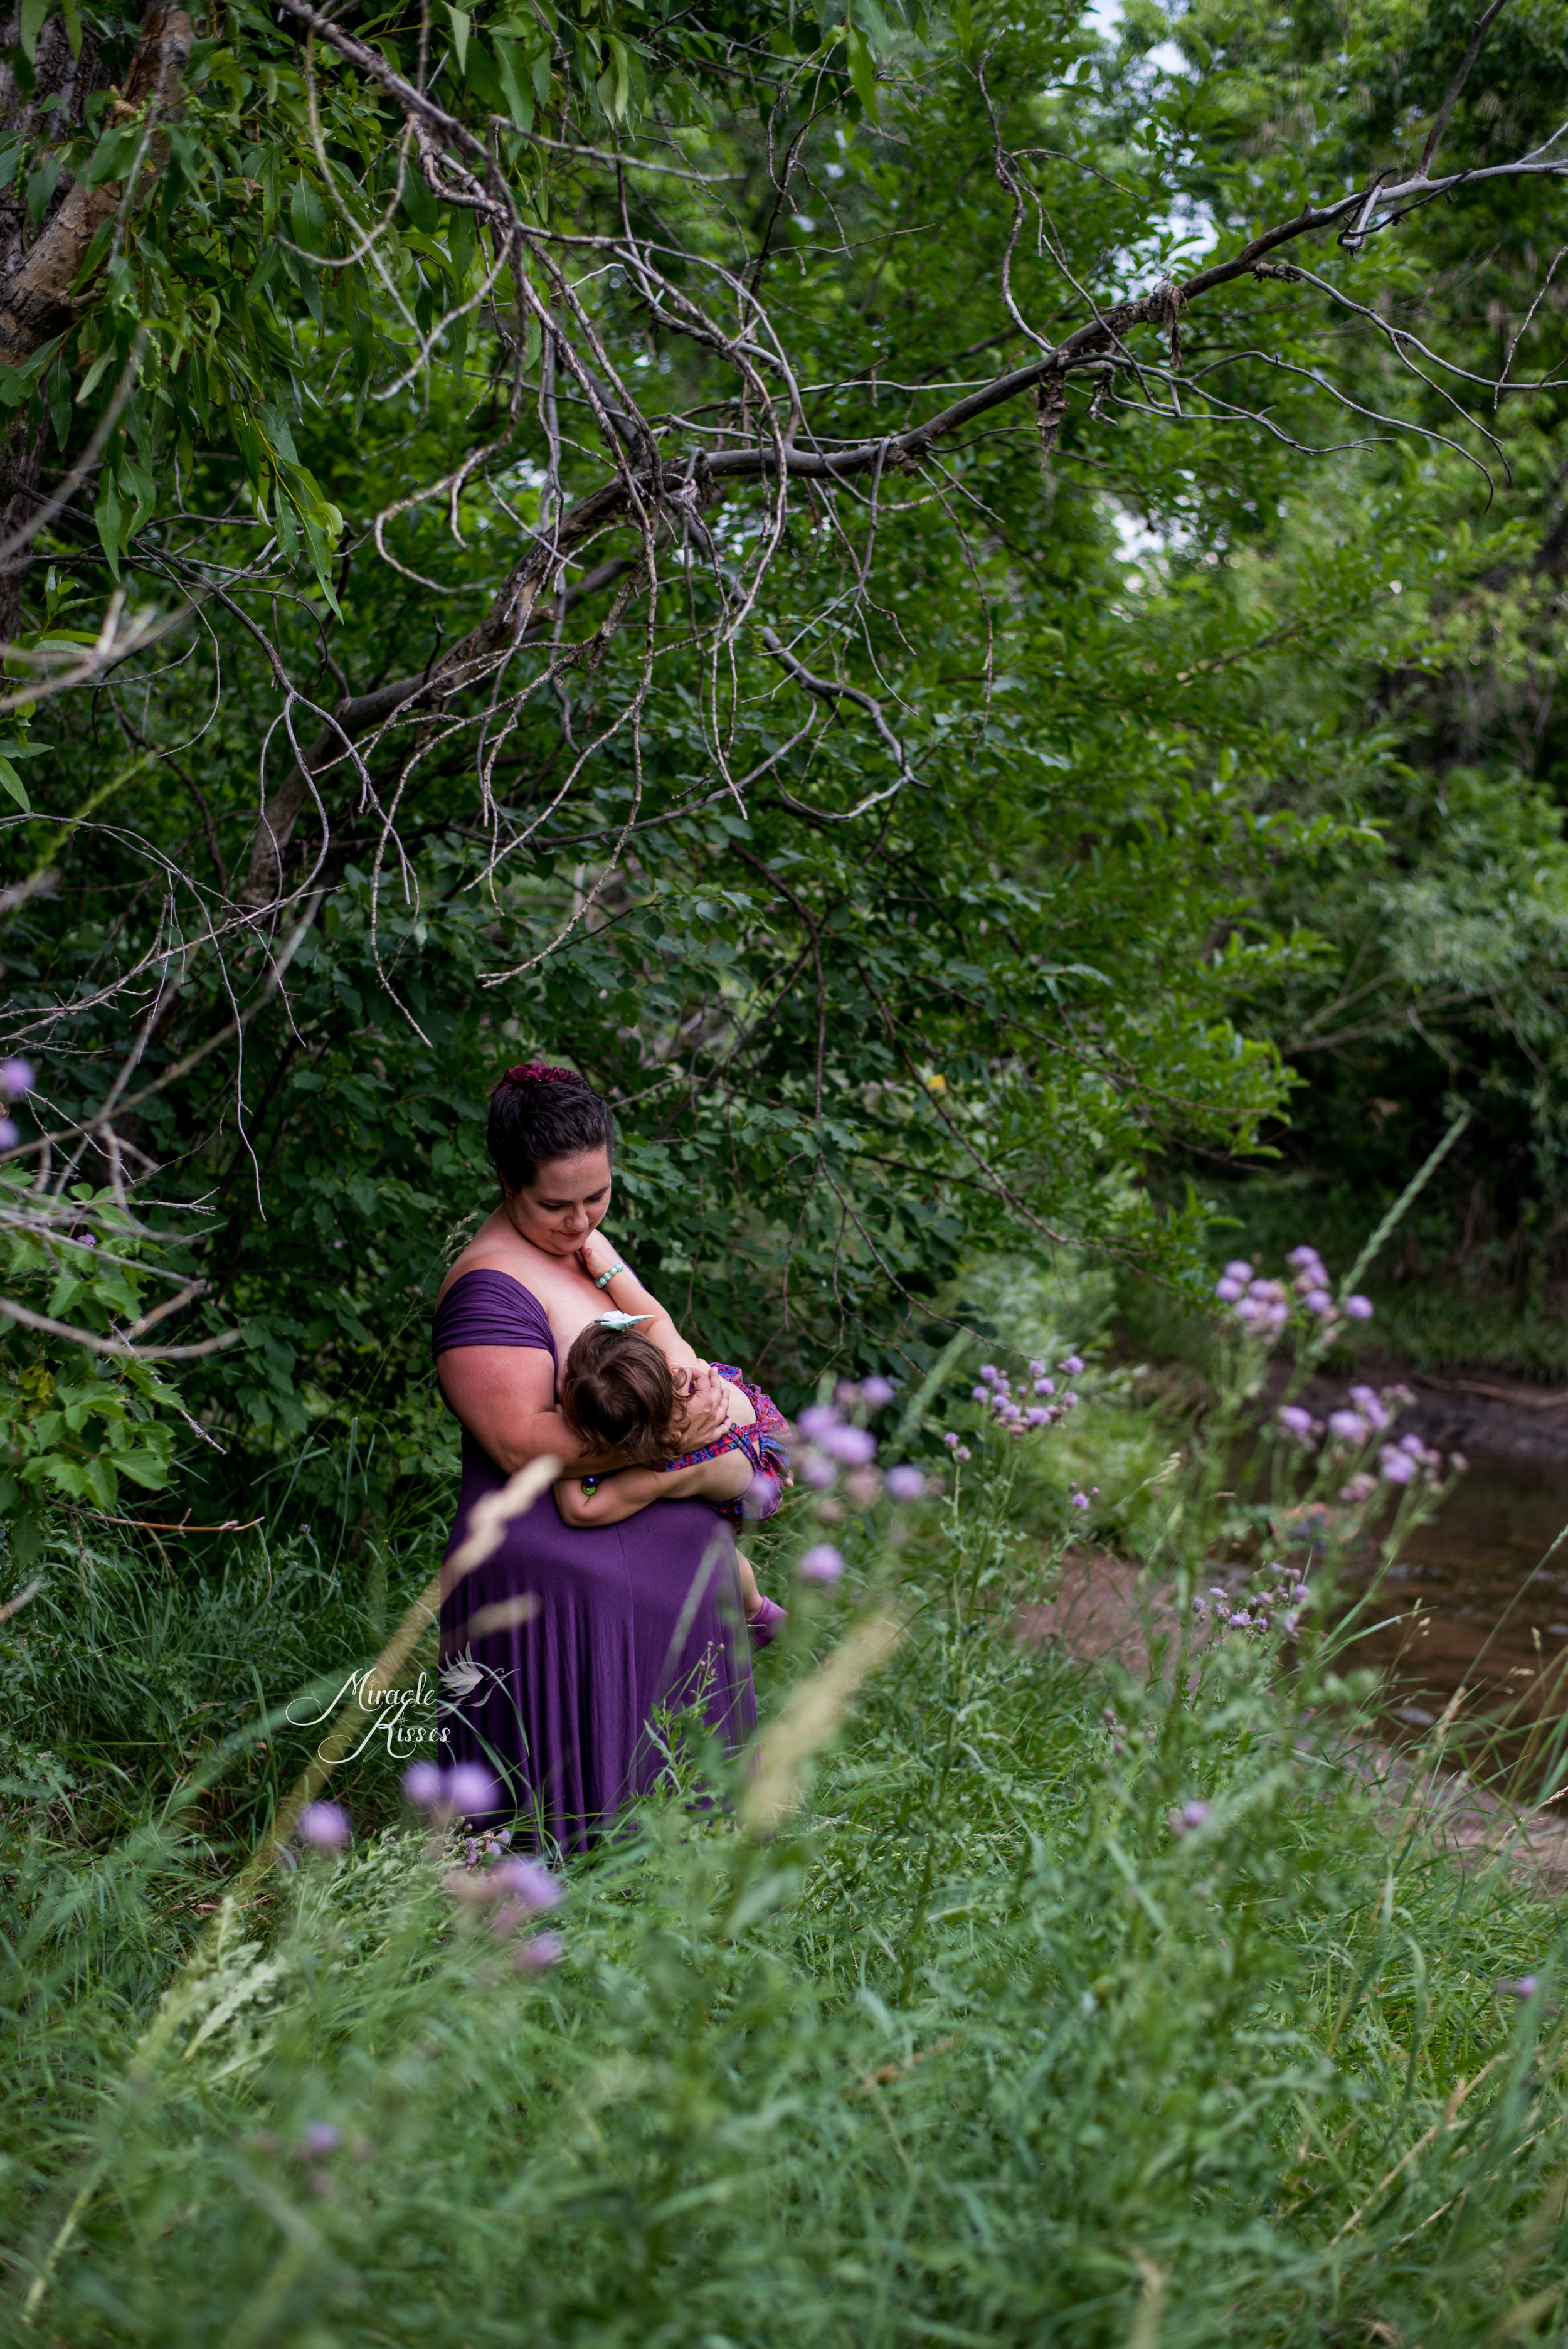 breastfeeding in a river image, breastfeeding photographer, 31 days 31 stories